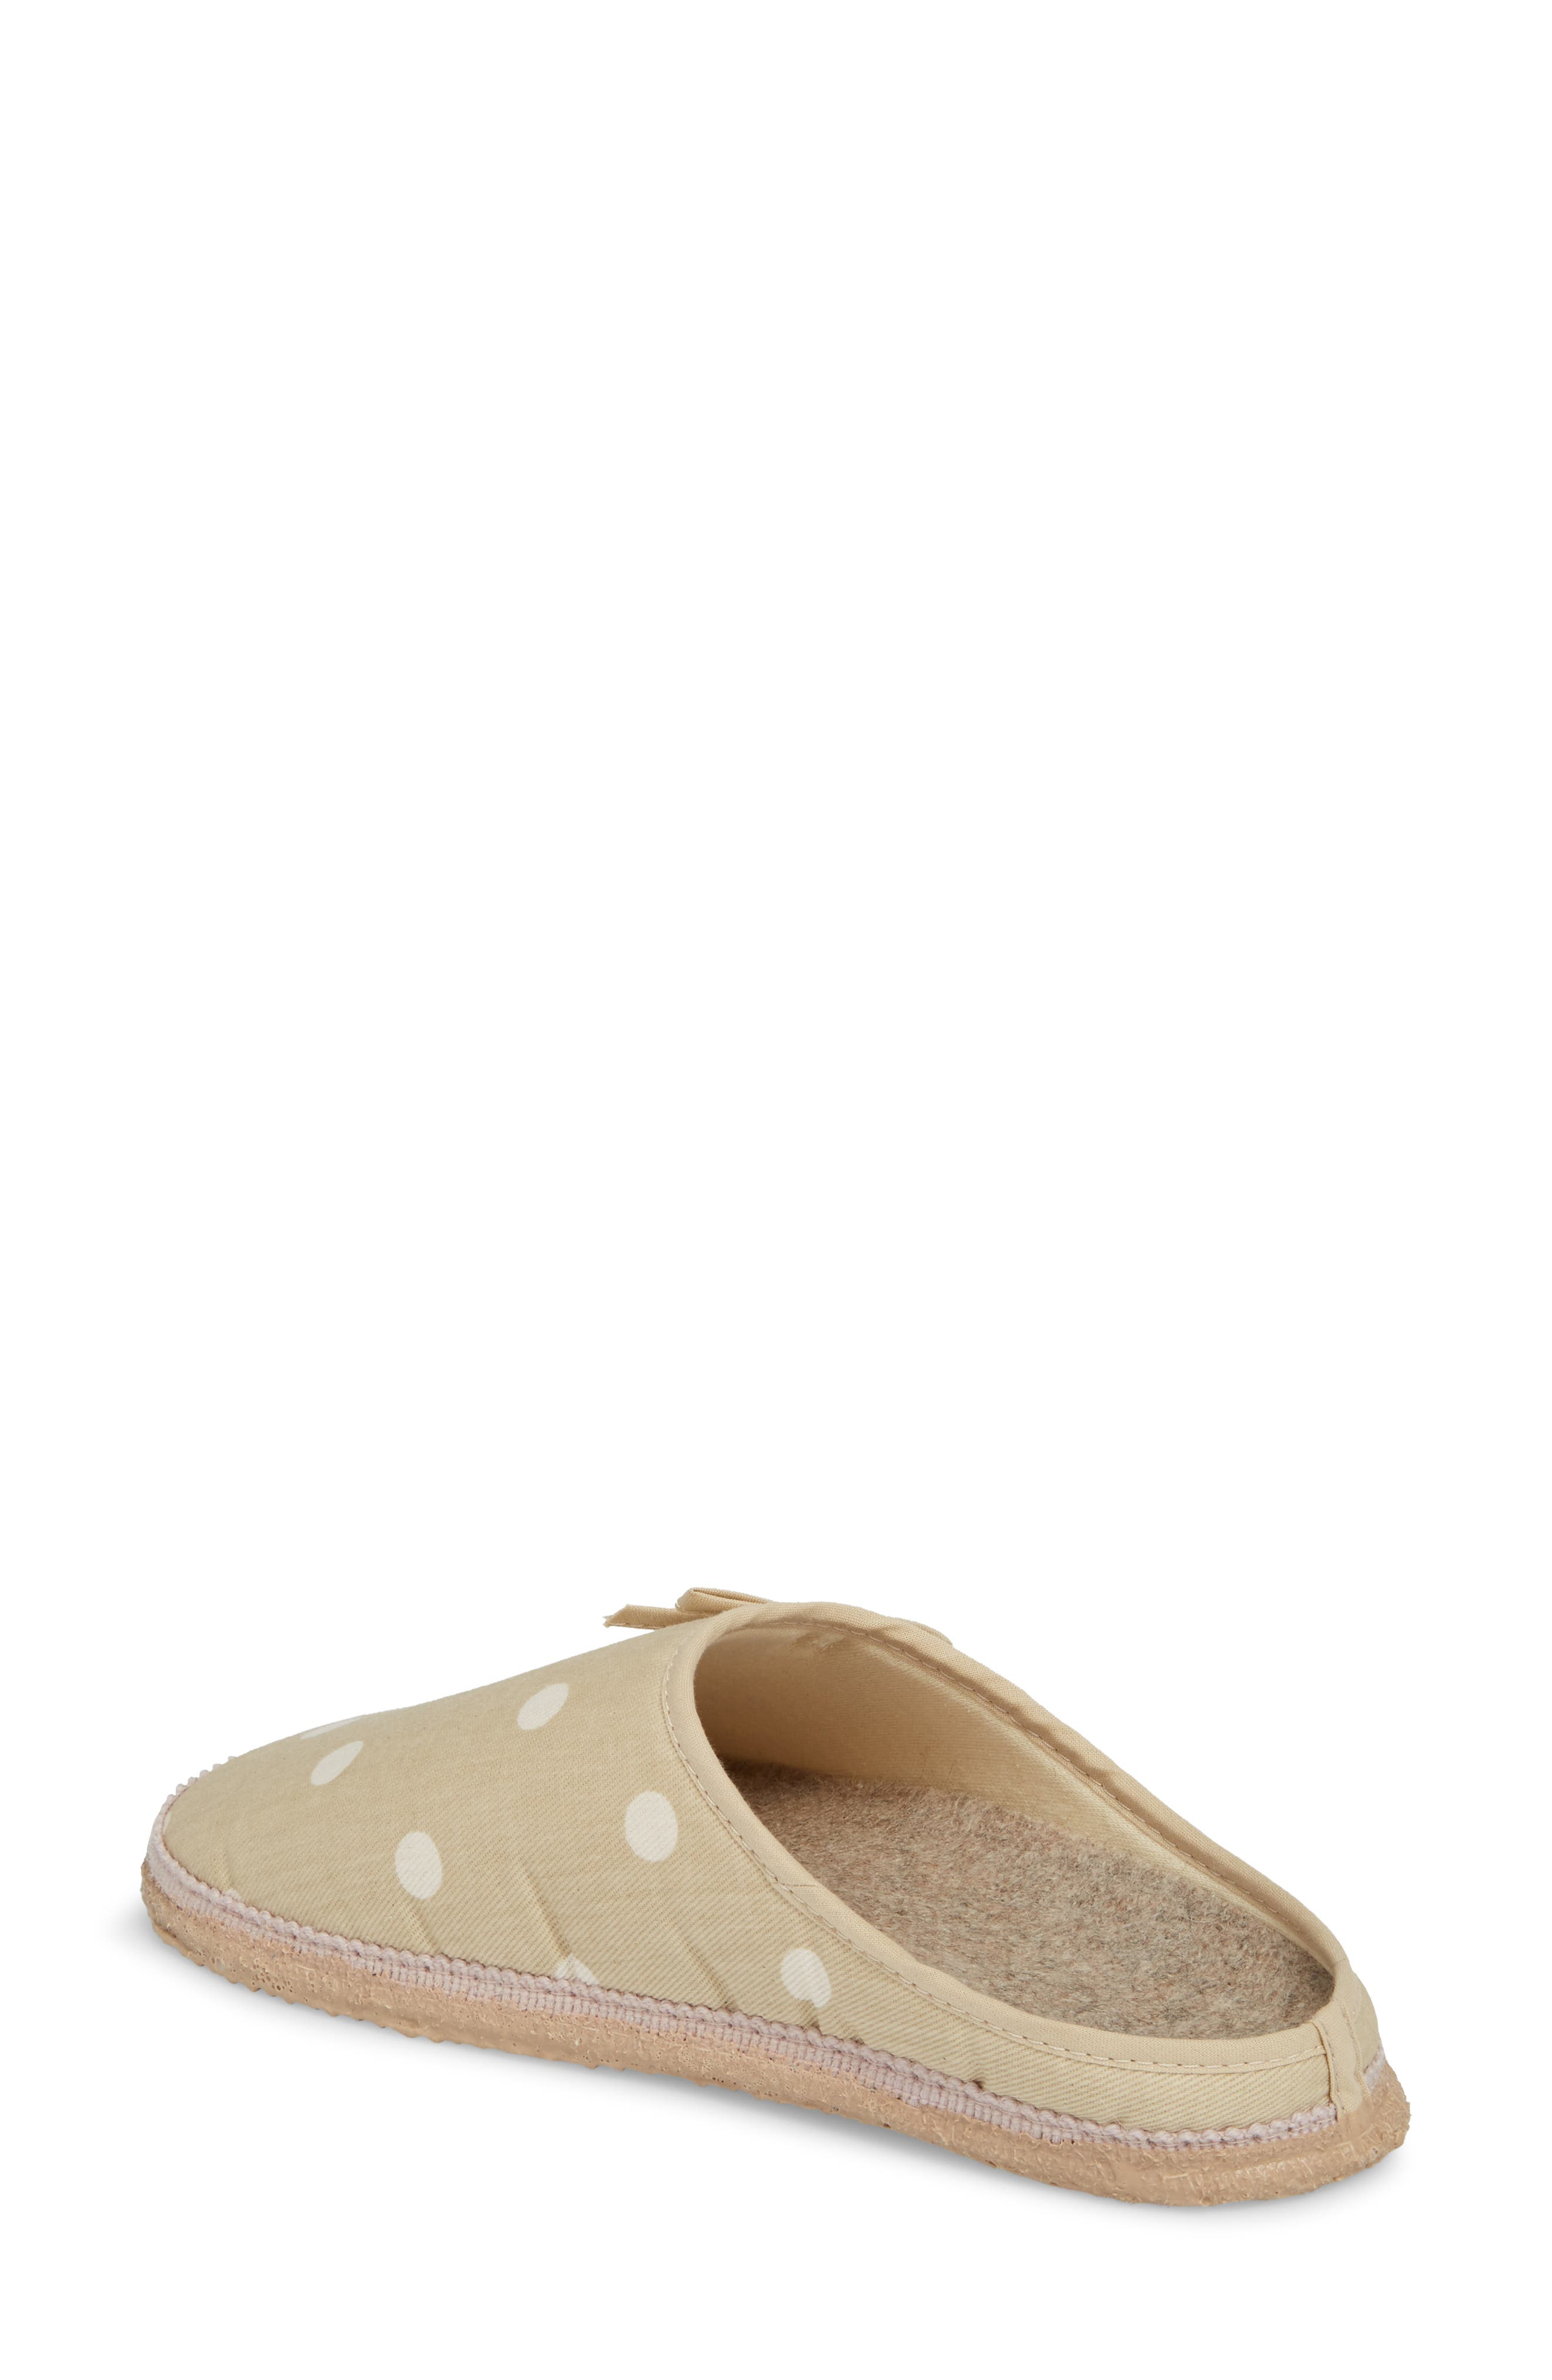 Meadow Slipper,                             Alternate thumbnail 2, color,                             Natural Fabric